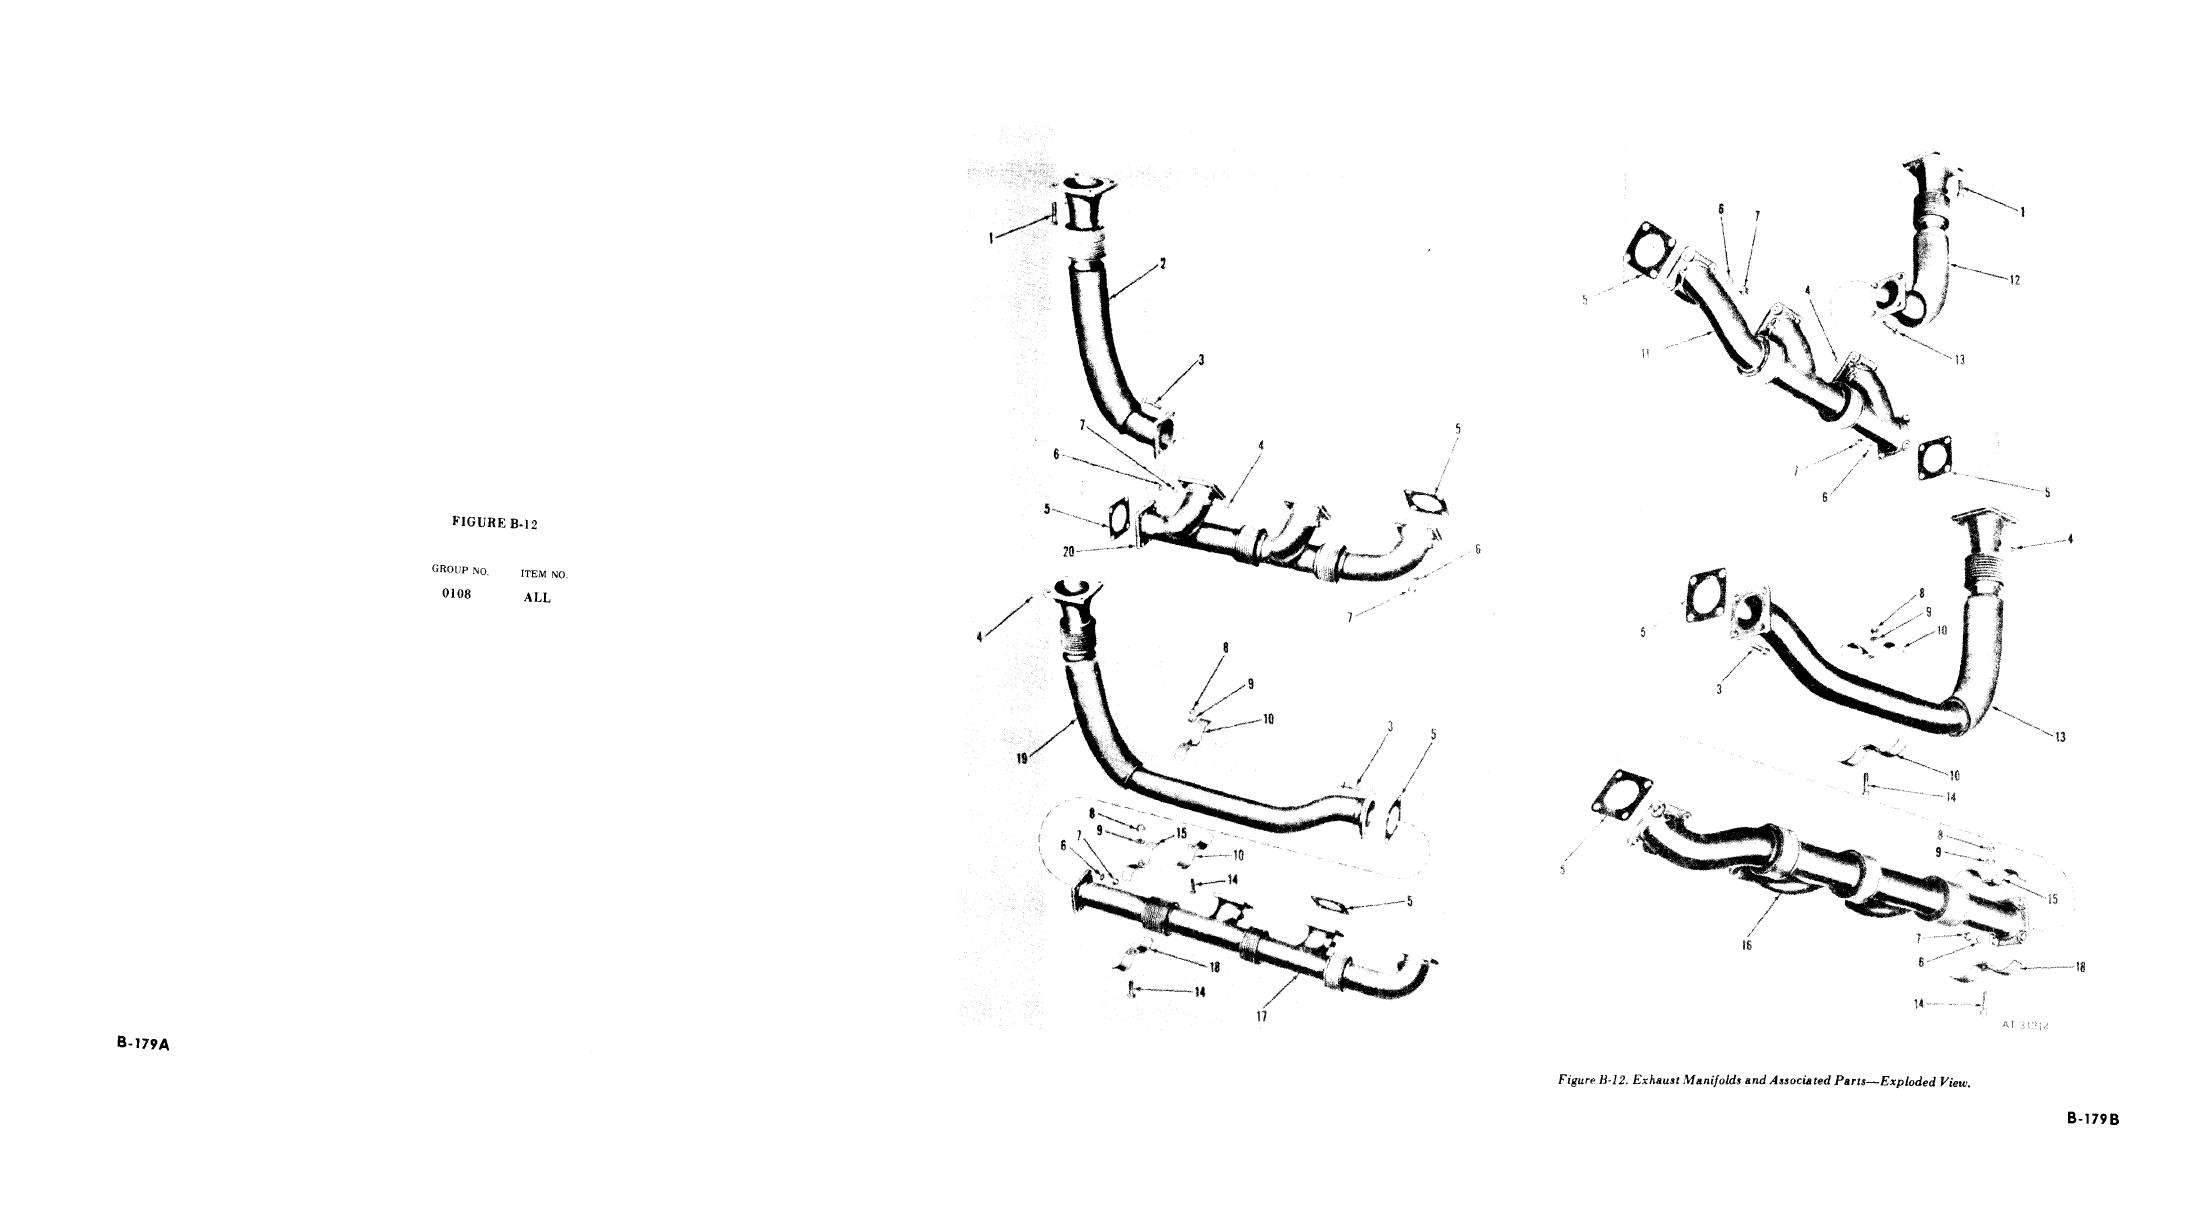 Figure B 12 Exhaust Manifolds And Associated Parts